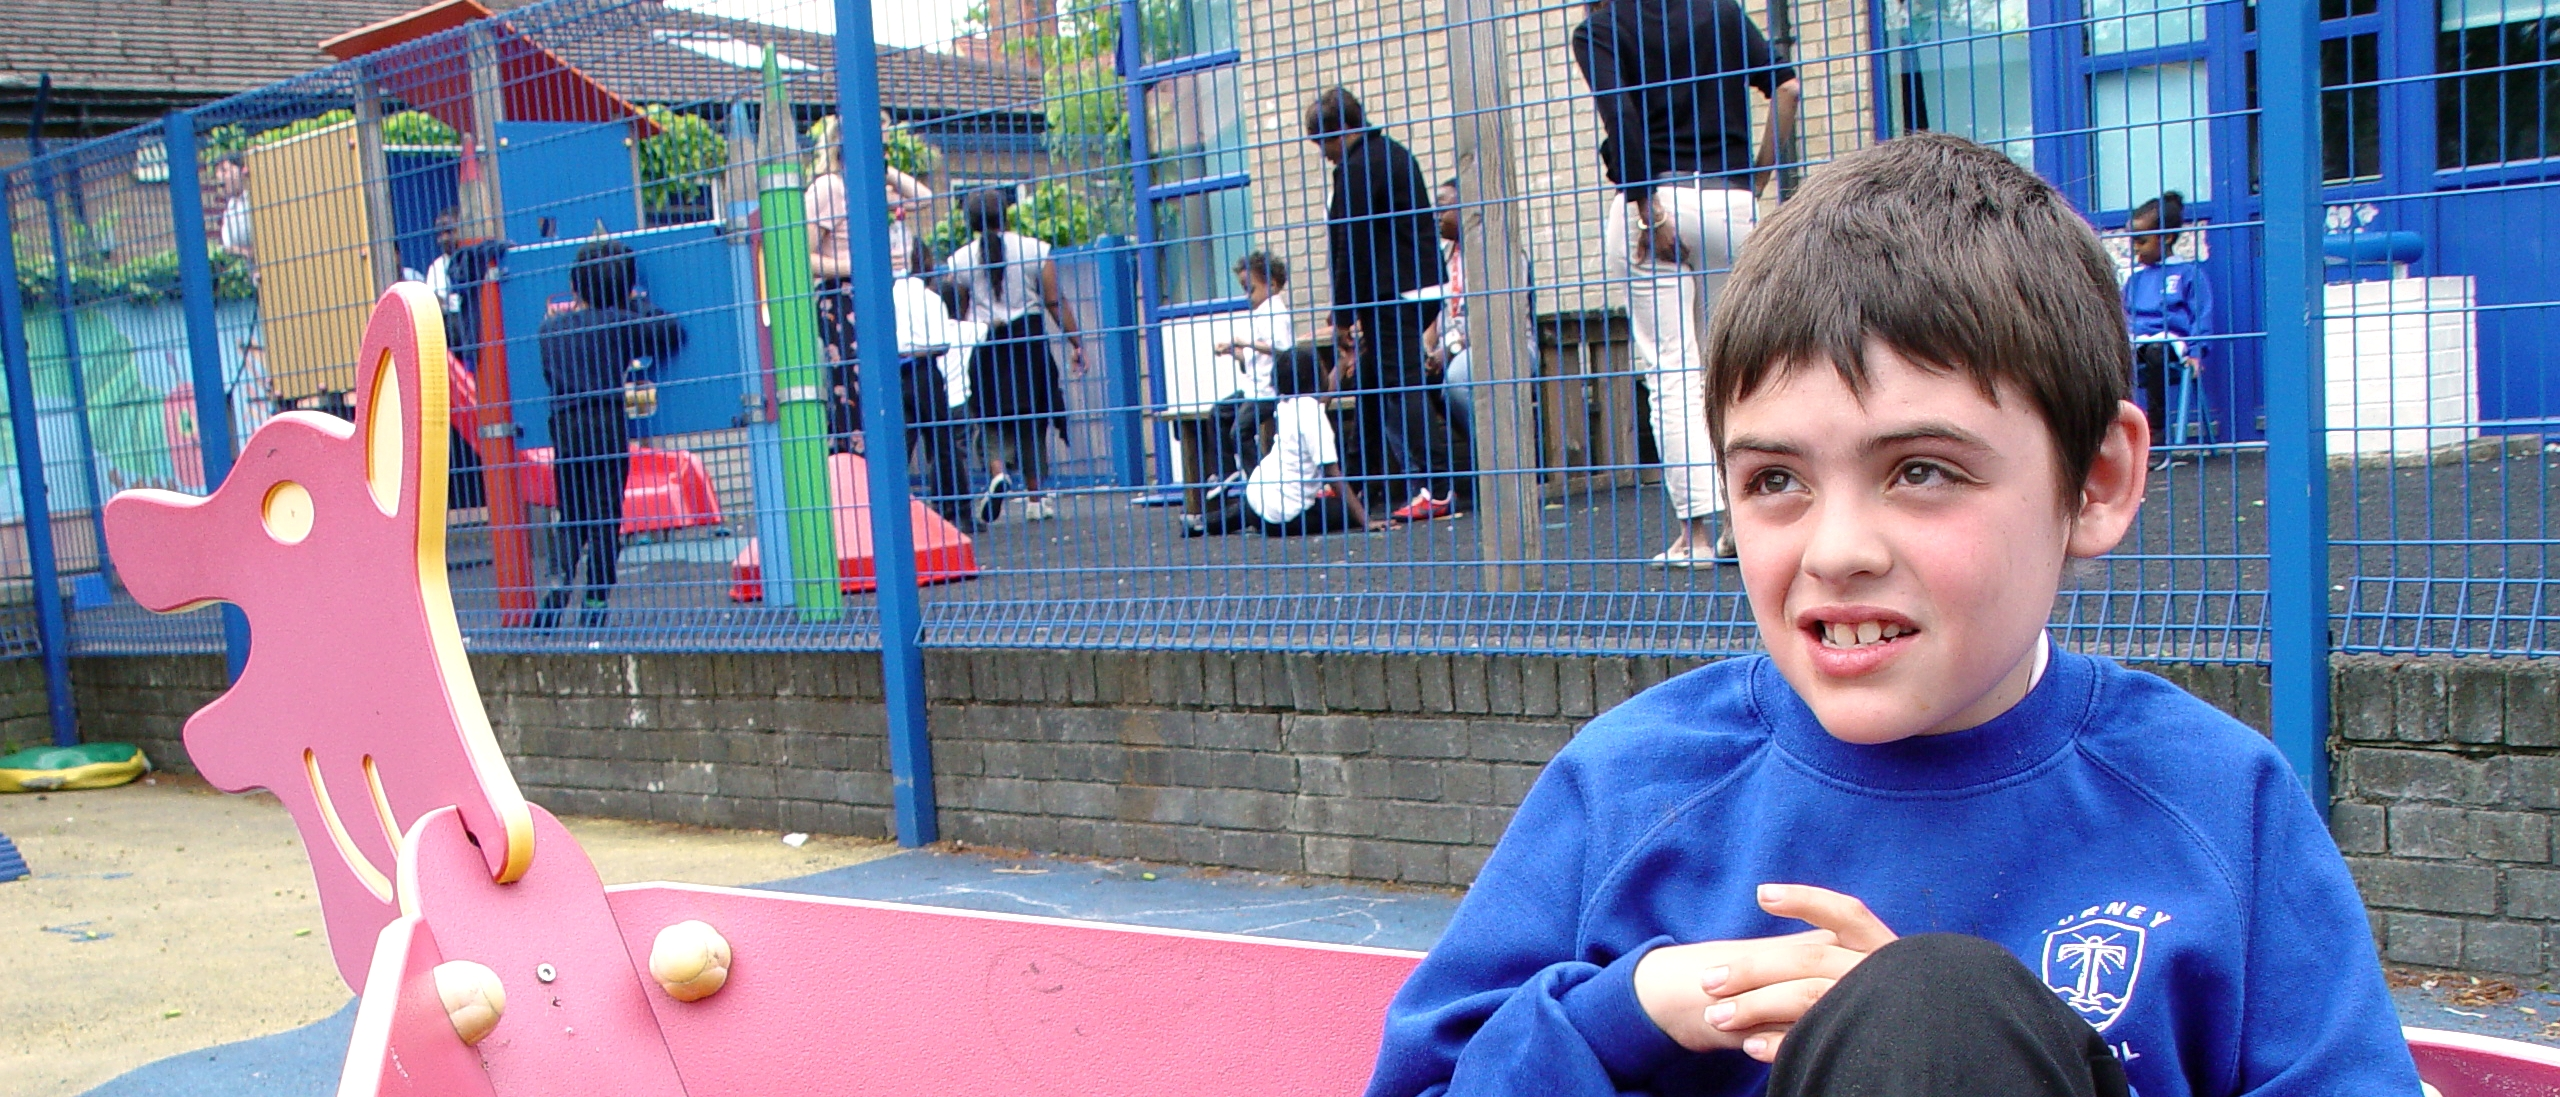 Primary School Playground Pics